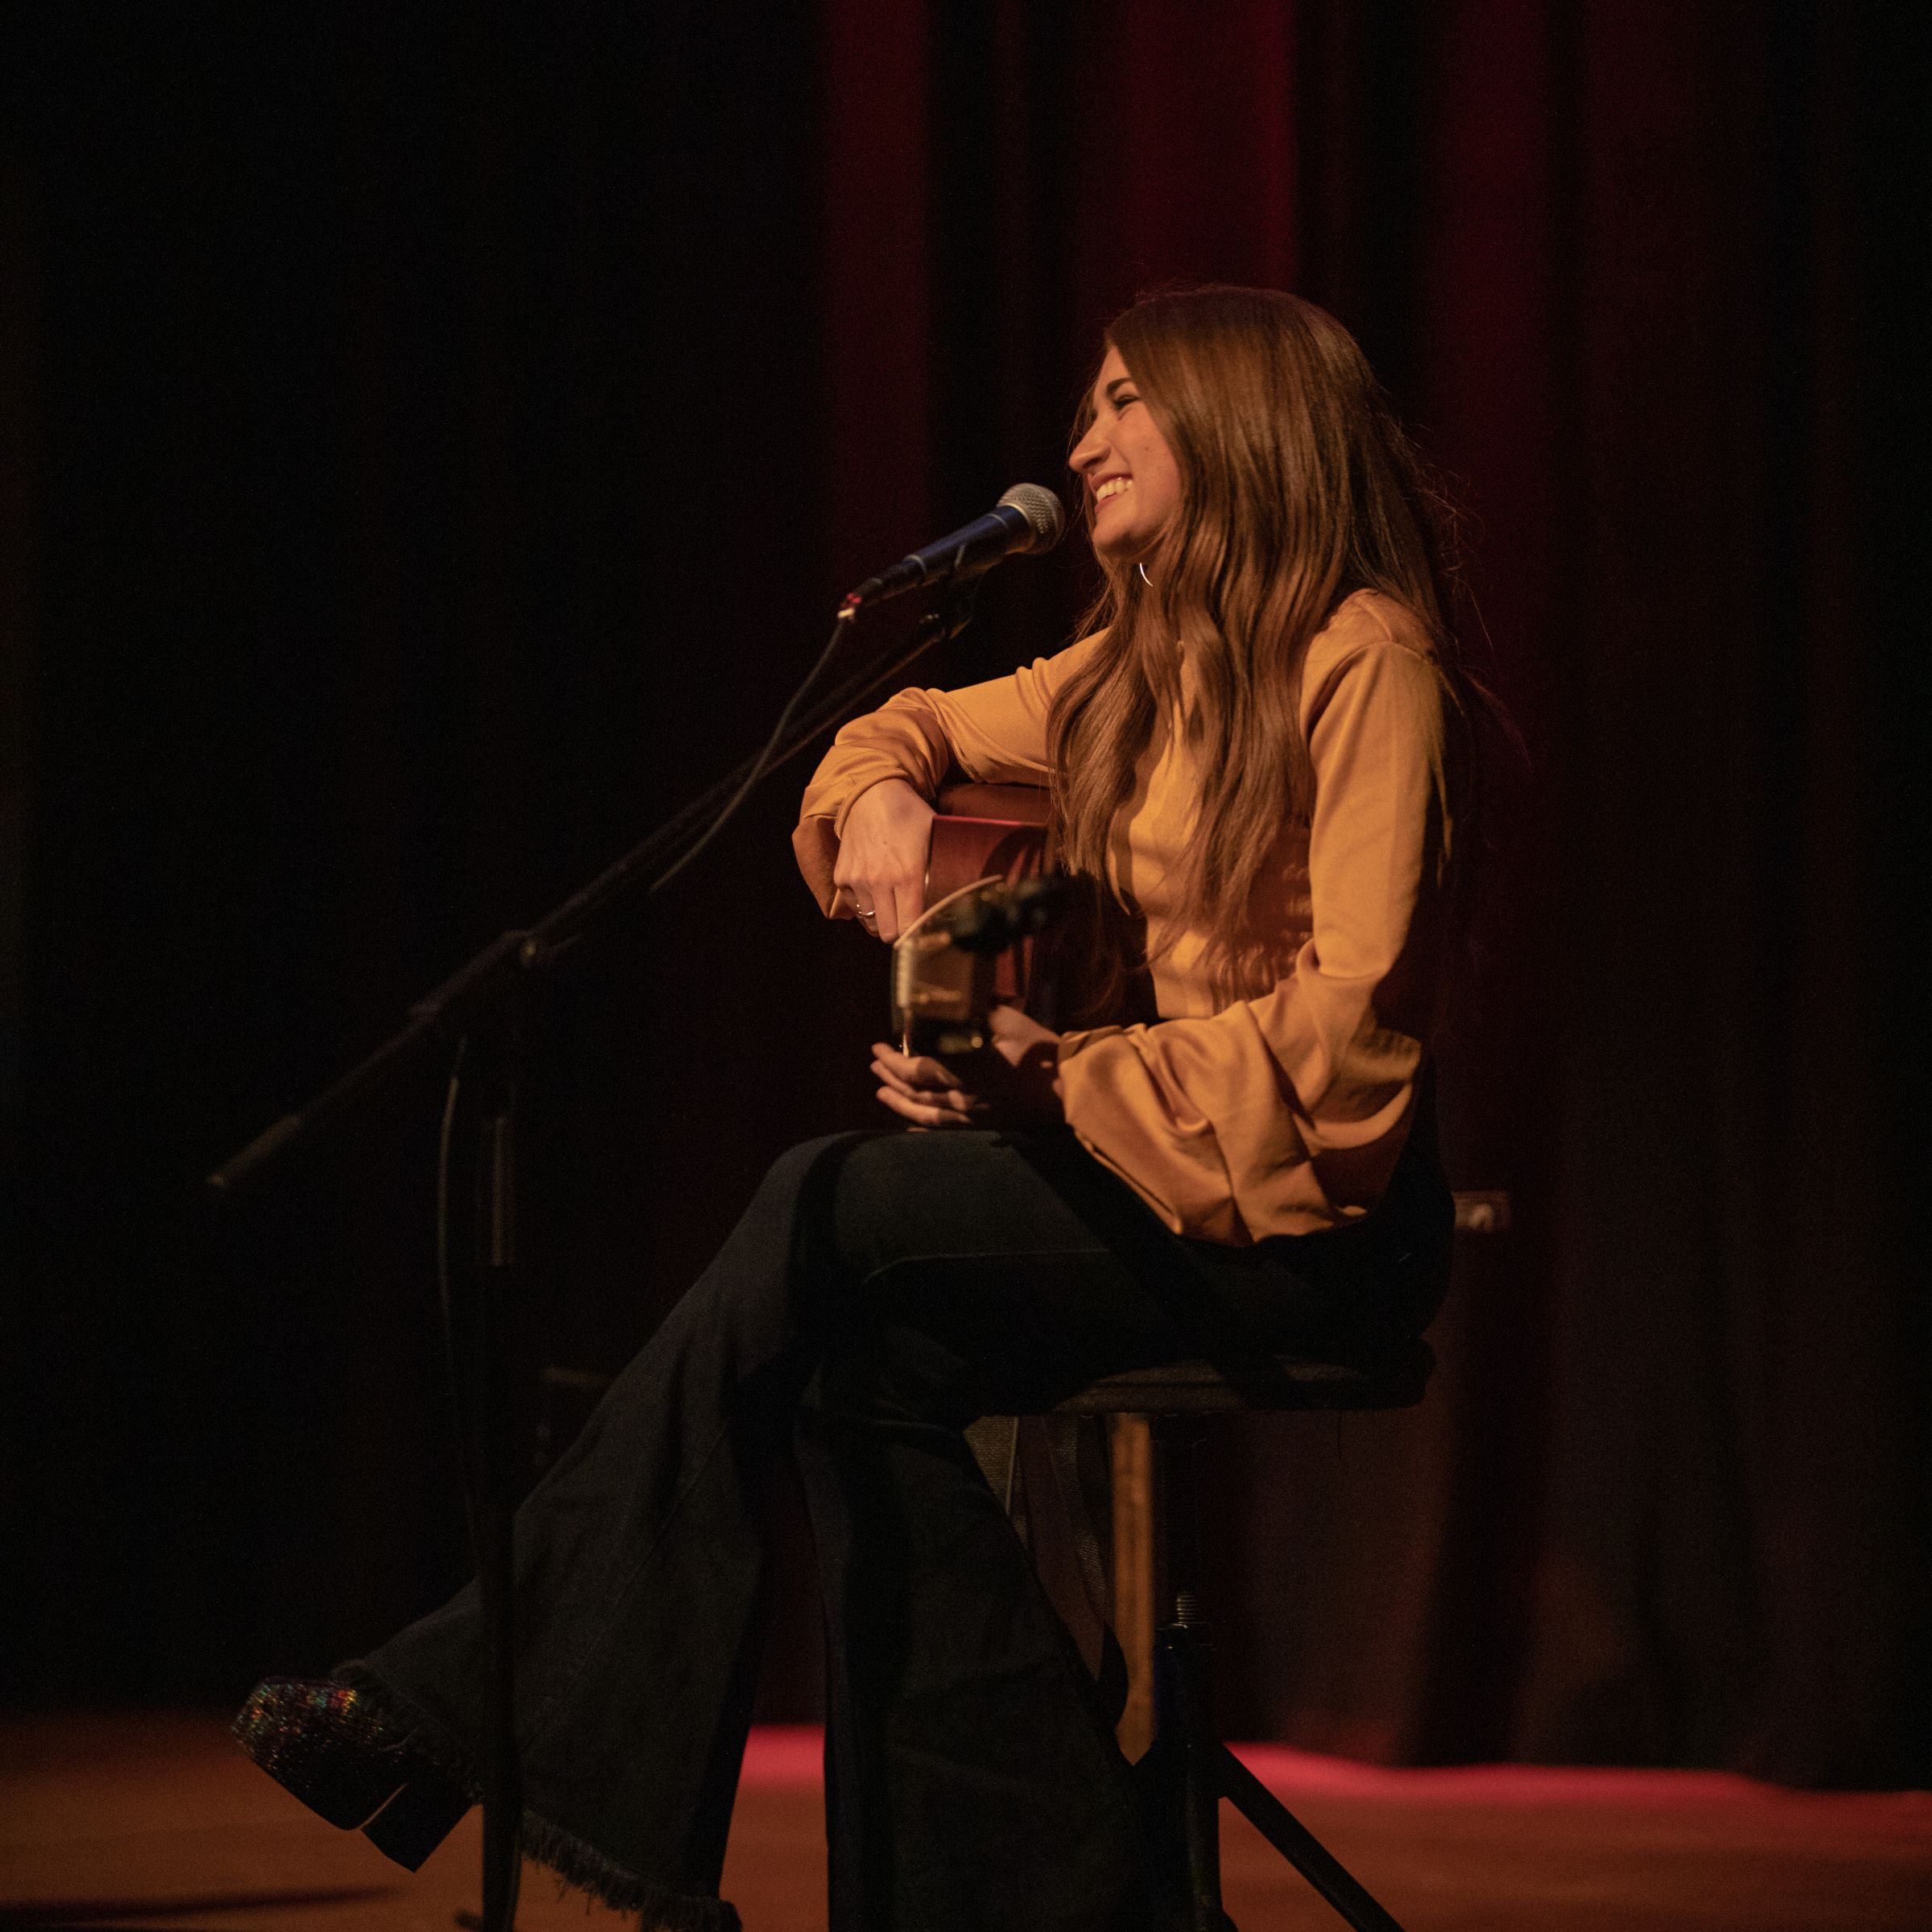 Introducing Nashville visits The Old Museum in Brisbane, Australia on Tuesday, March 19, 2019 featuring Brandy Clark, Devin Dawson, Lindsay Ell and Tenille Townes.